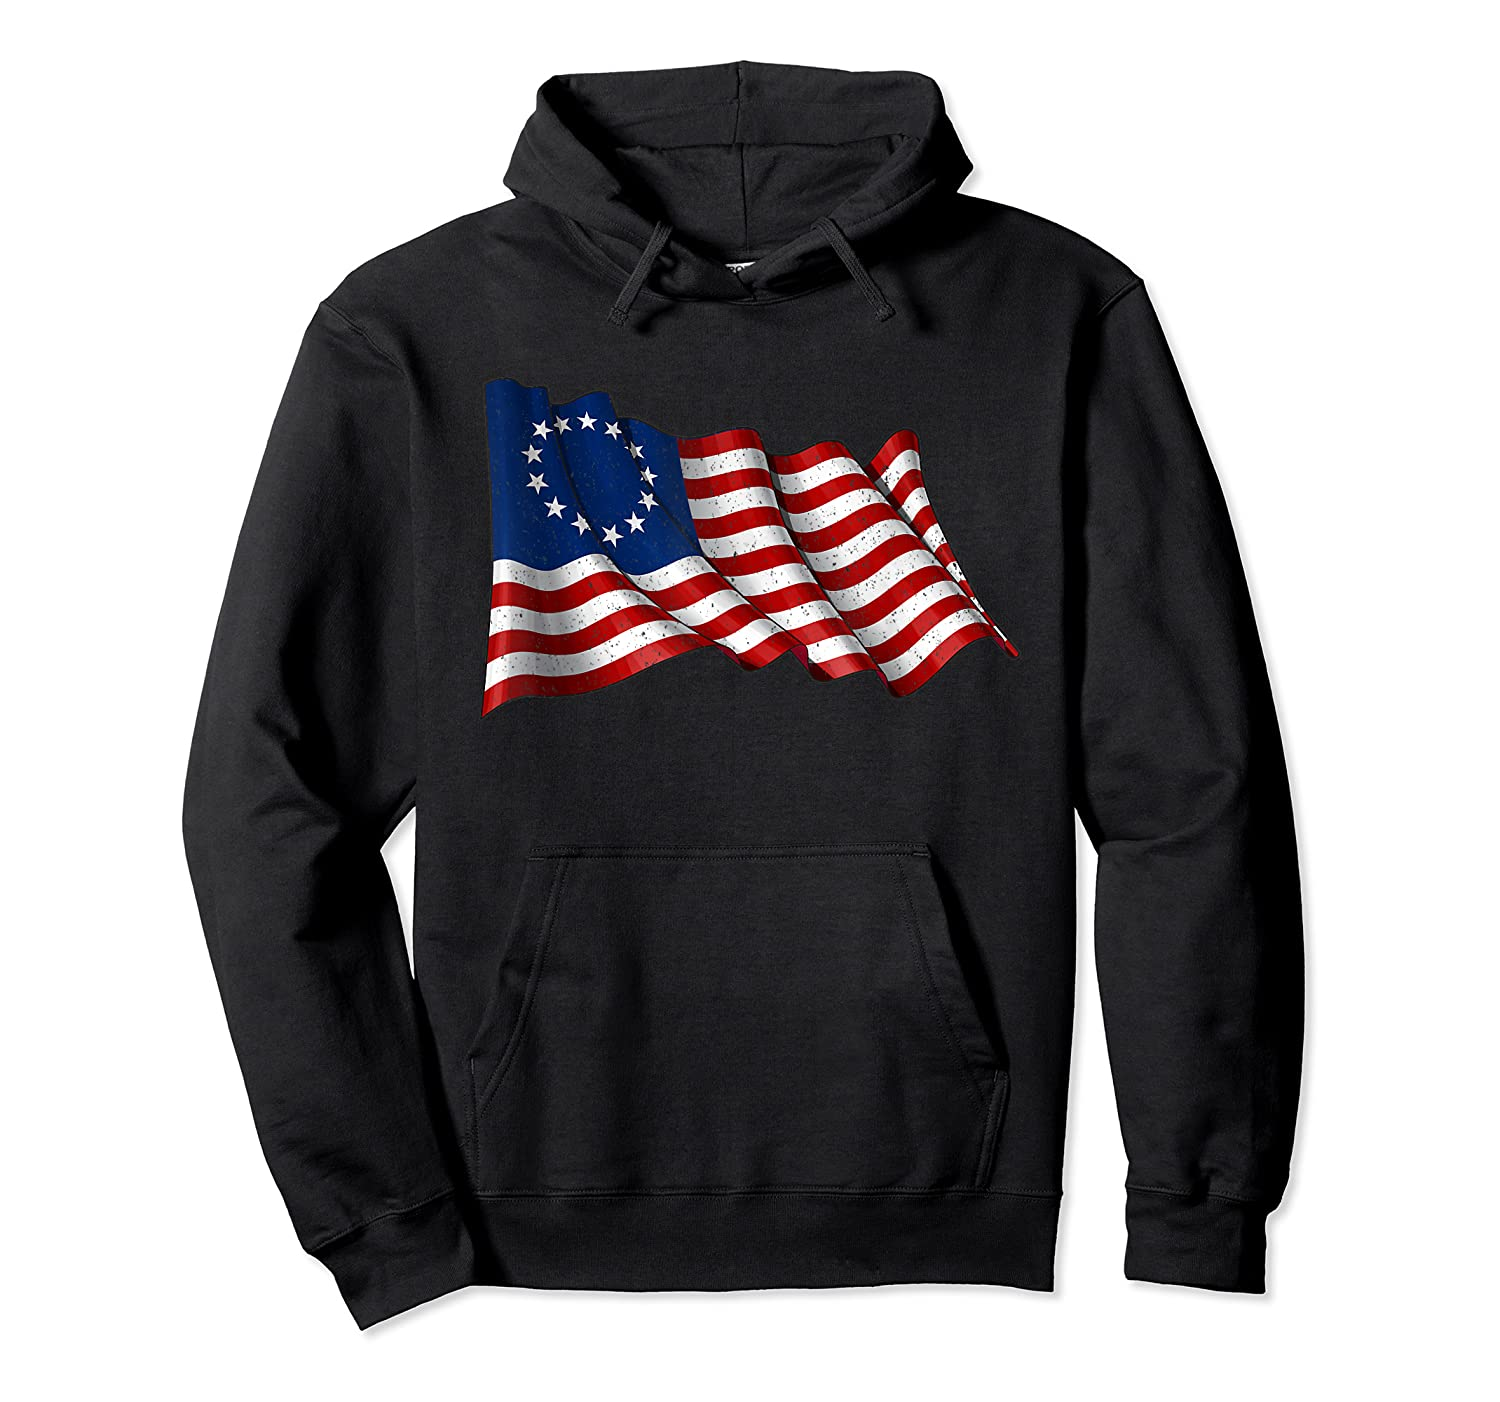 America Betsy Ross Flag 1776 Vintage Distressed T Shirt Unisex Pullover Hoodie